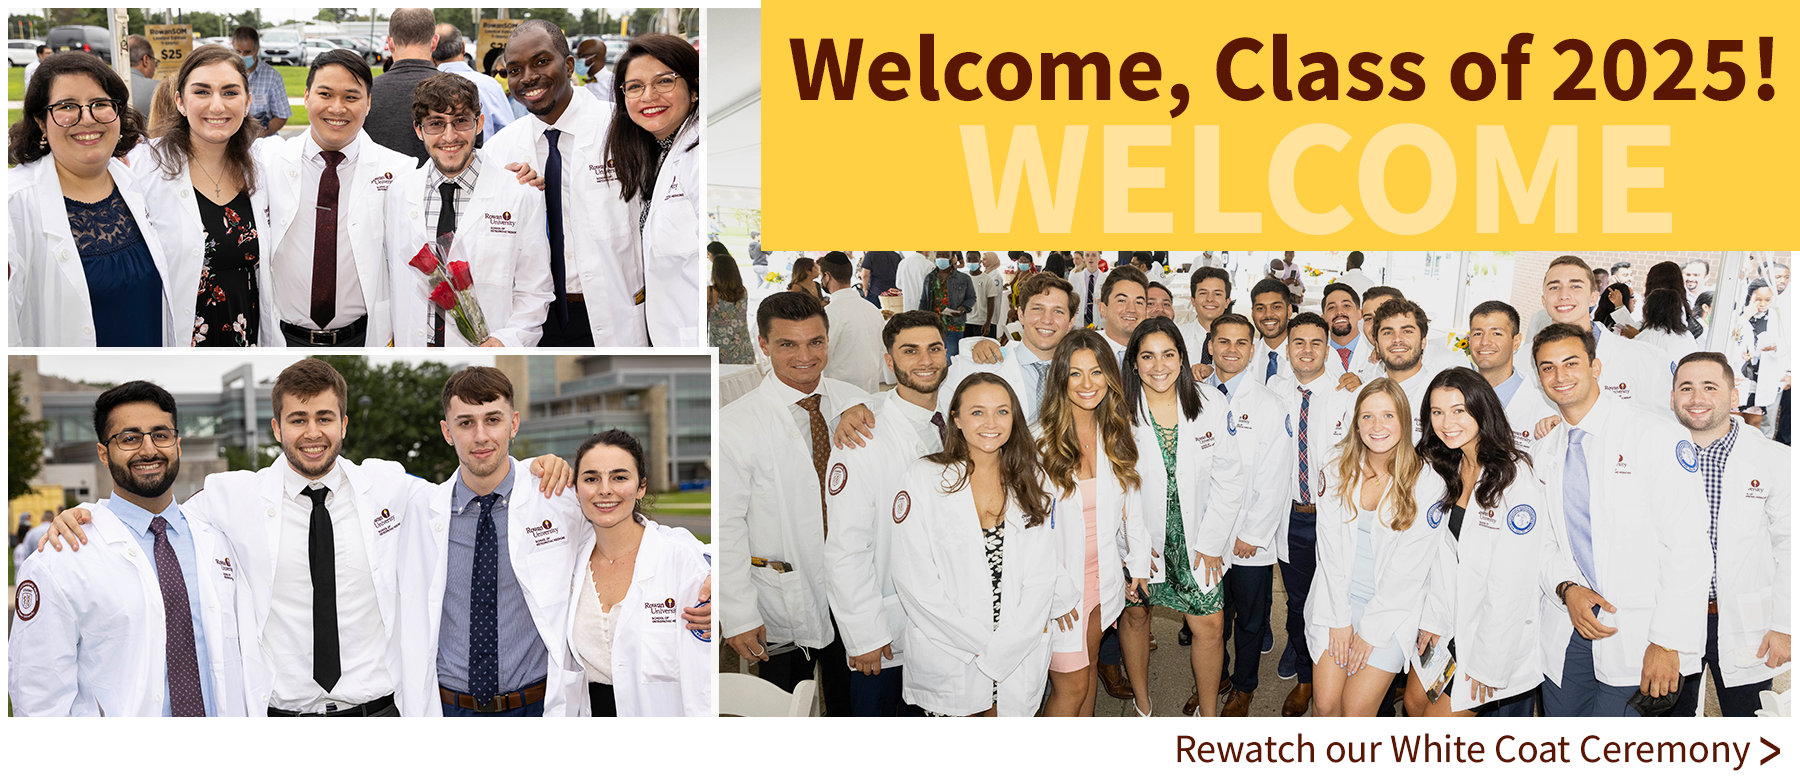 Welcome to the Class of 2025 - Click to watch the White Coat Ceremony